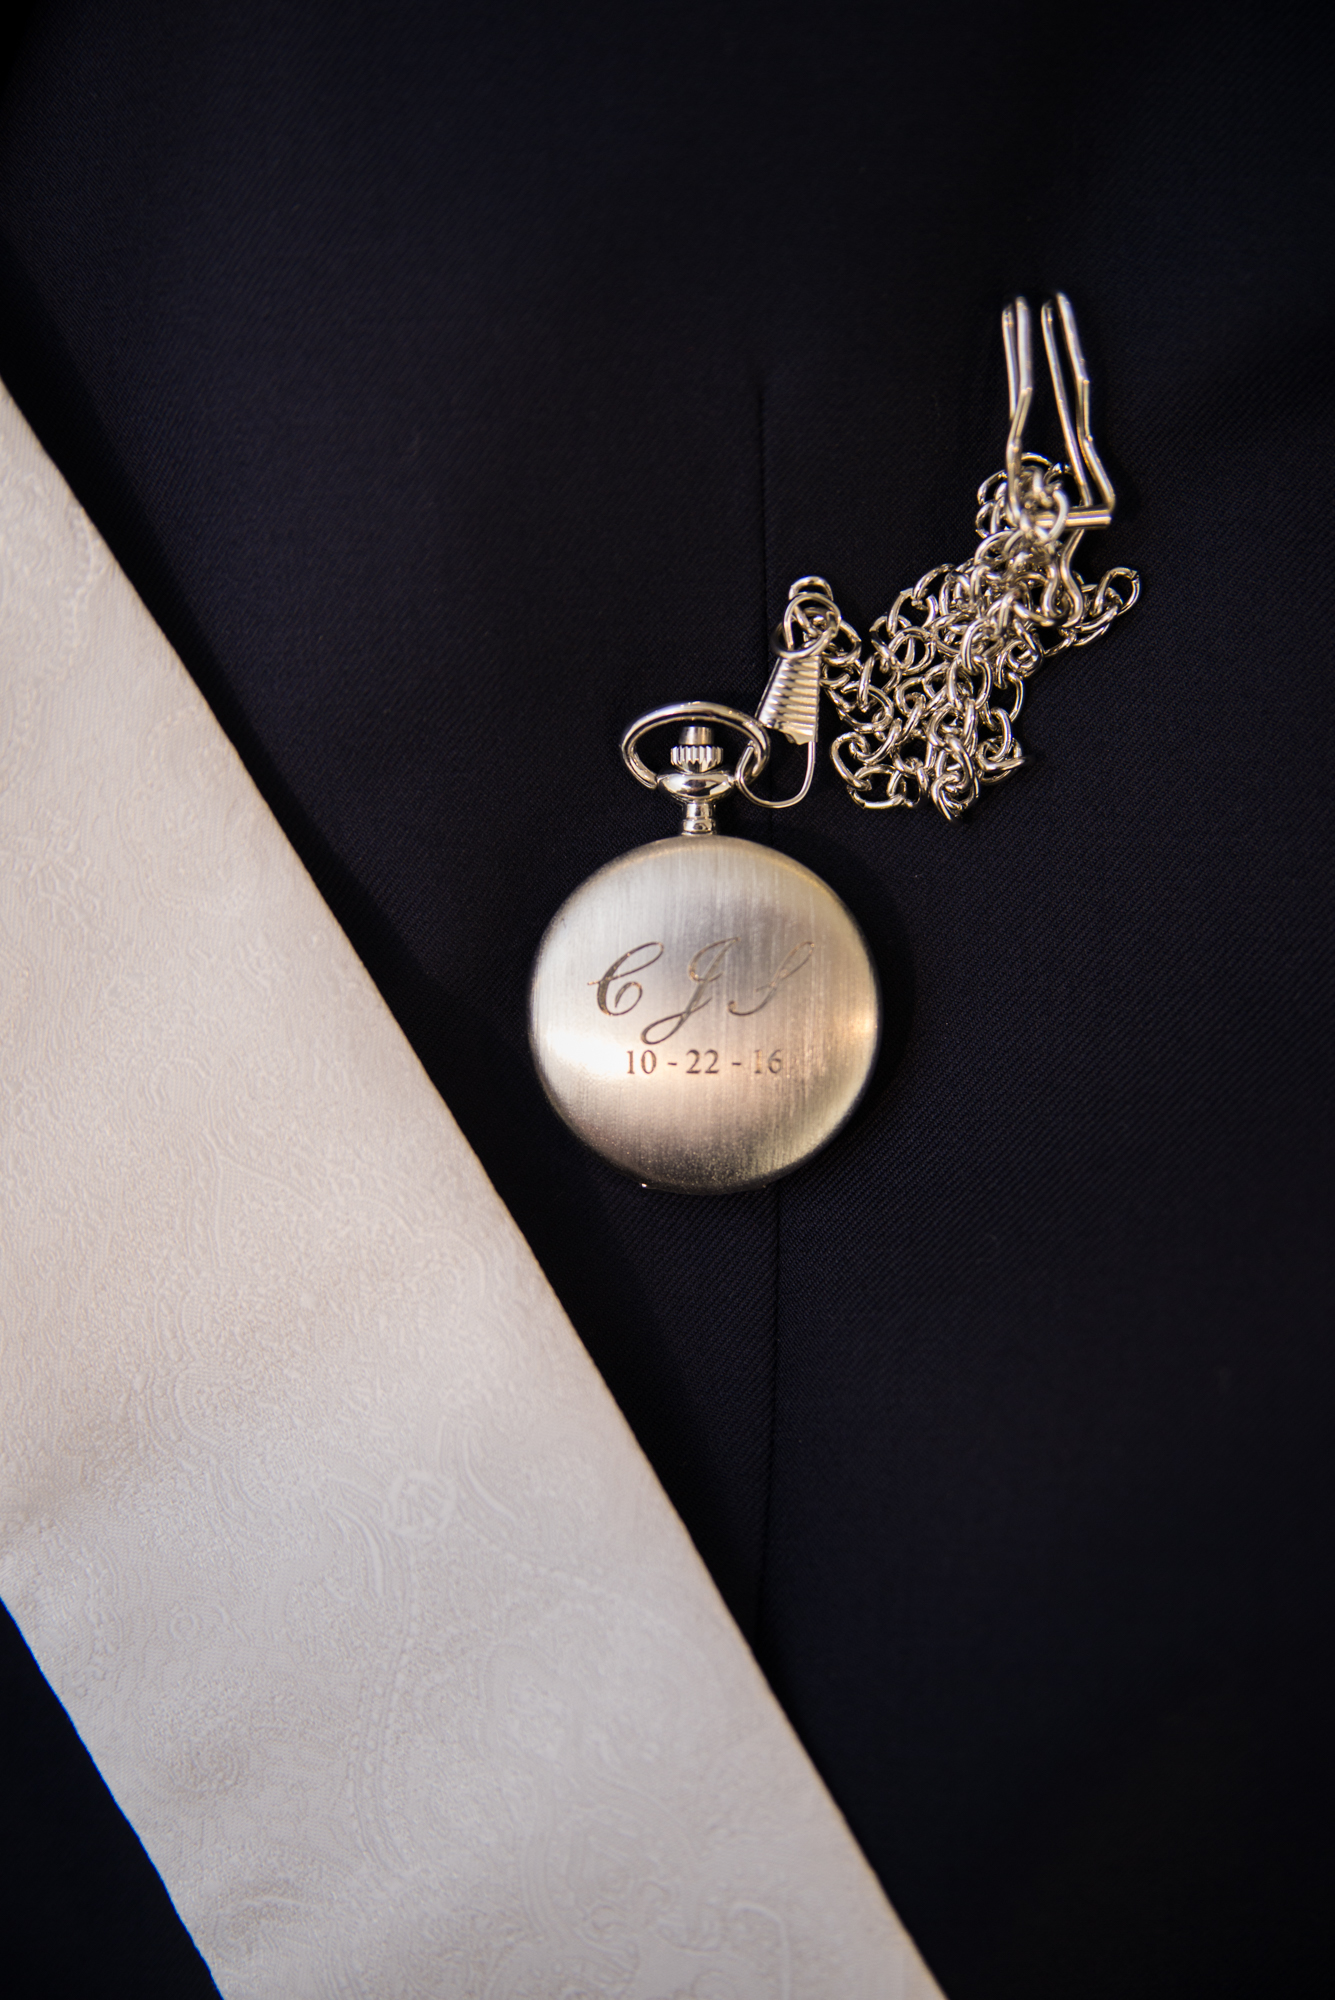 Groom's Gift - Engraved Pocket Watch - Travel Themed Wedding - Caitlin Gerres Photography